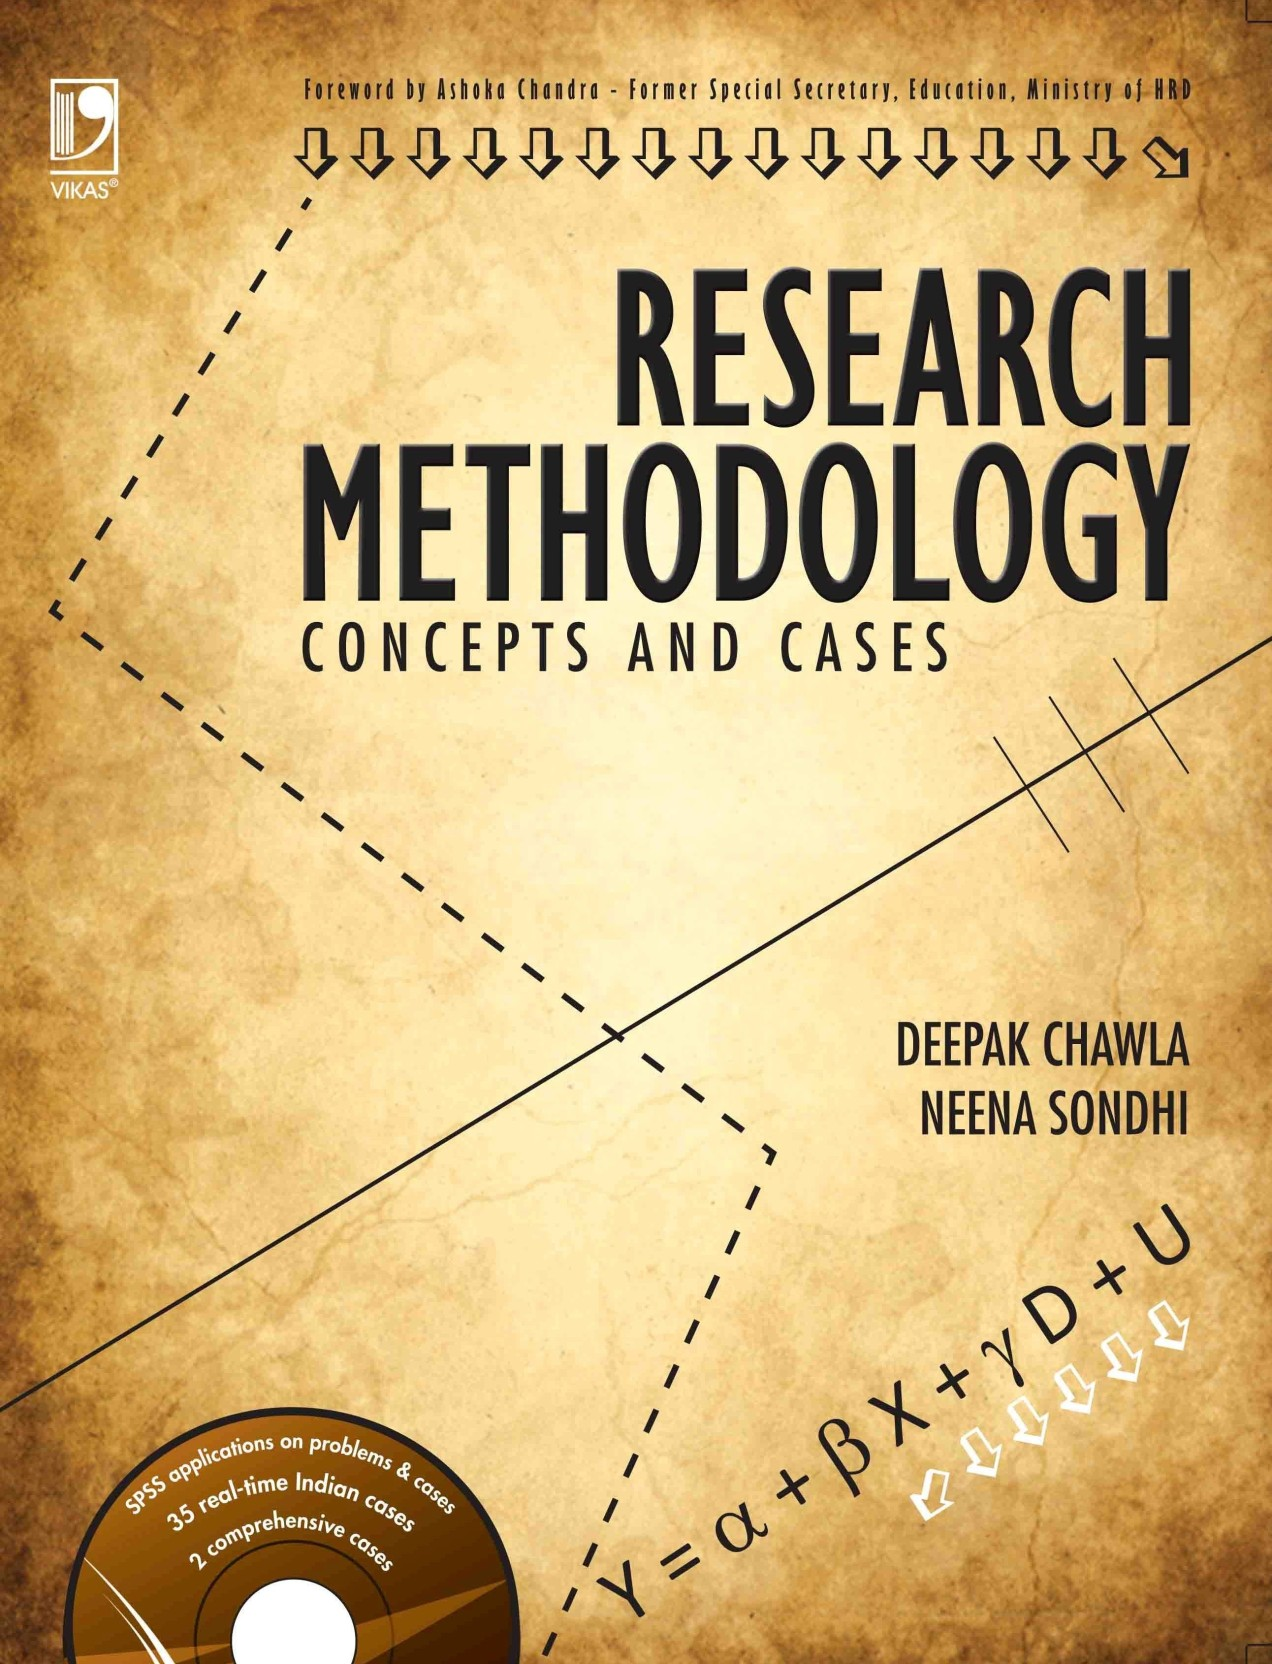 Concept of research methodology